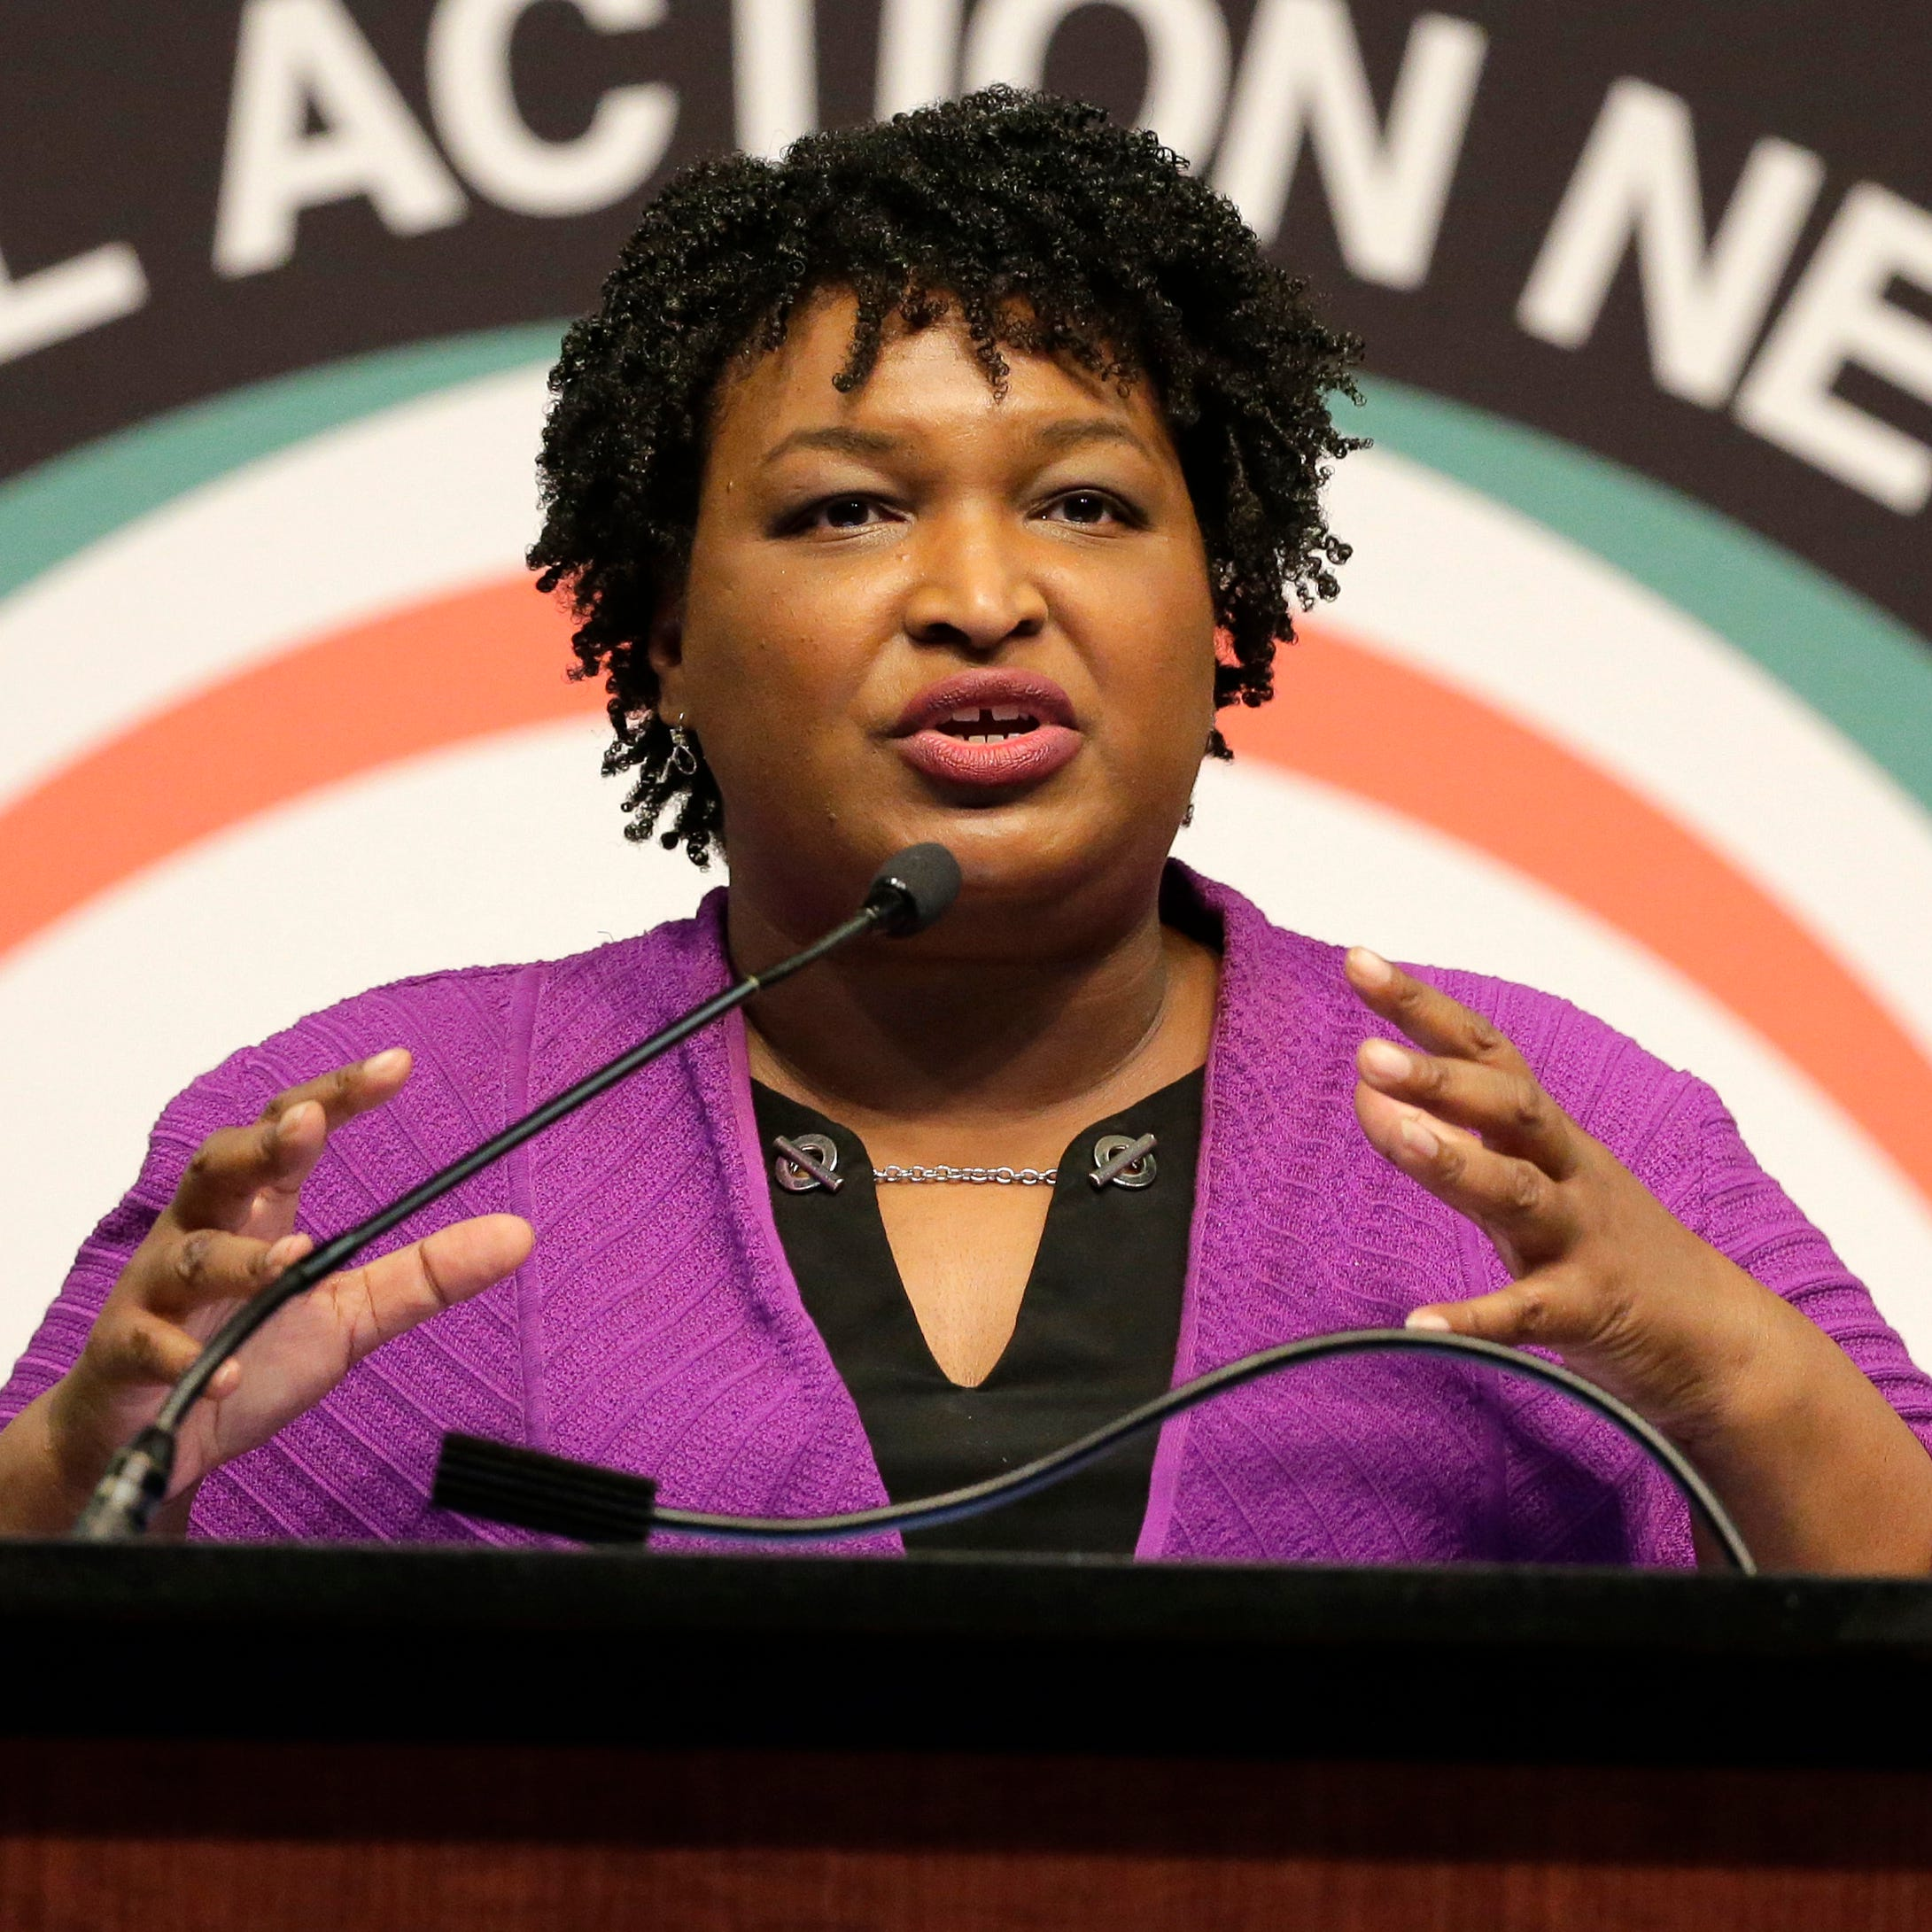 Former Georgia gubernatorial candidate Stacey Abrams speaks during the National Action Network Convention in New York,  April 3, 2019.